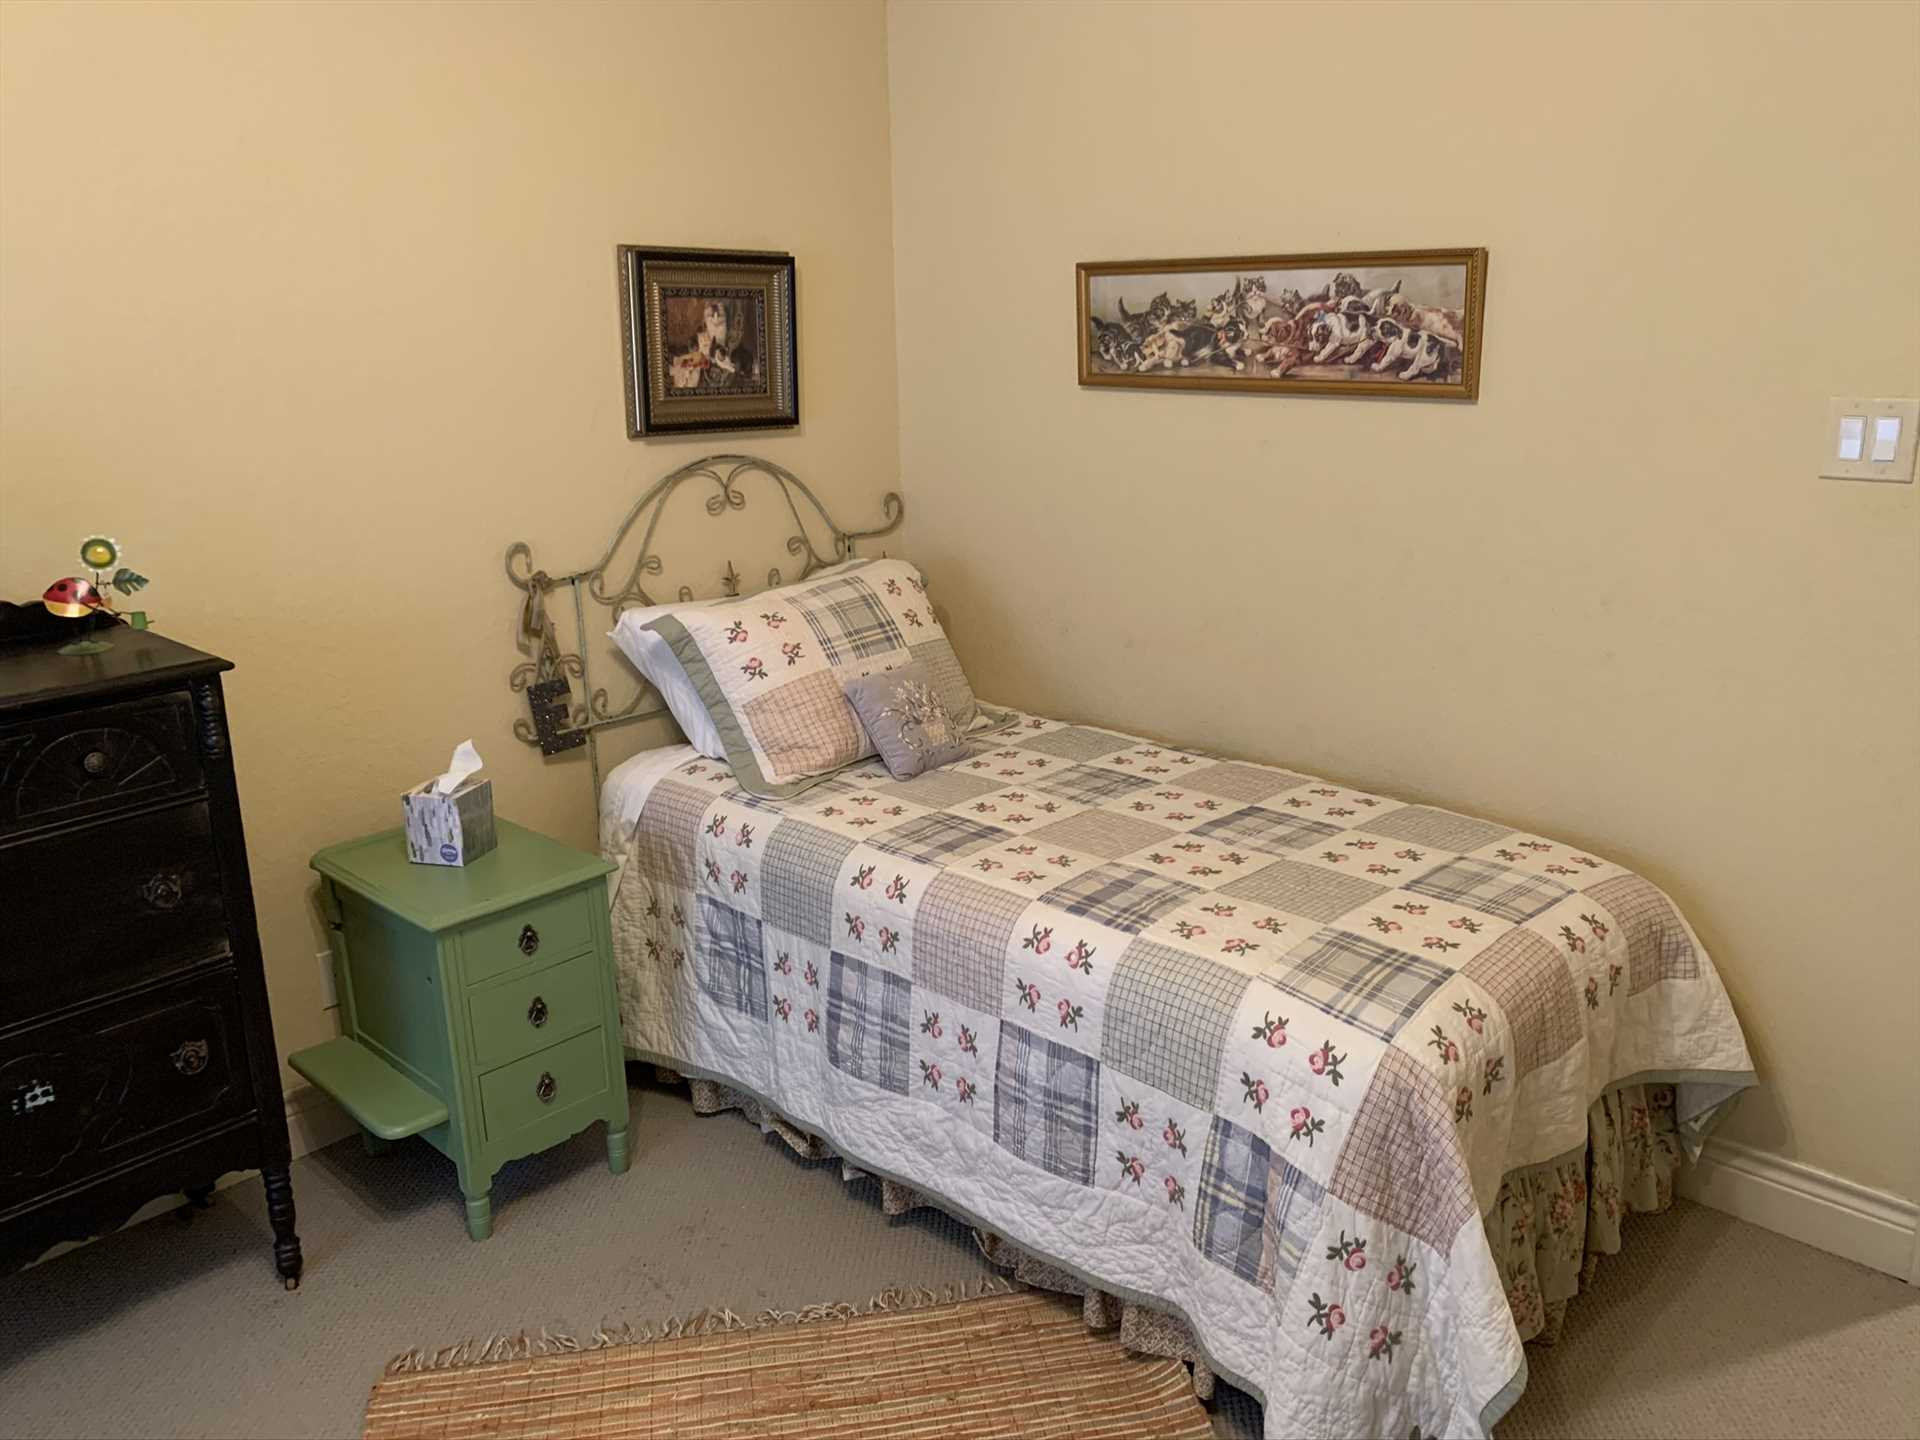 All told, three bedrooms and five beds provide sweet slumber space for up to seven guests.